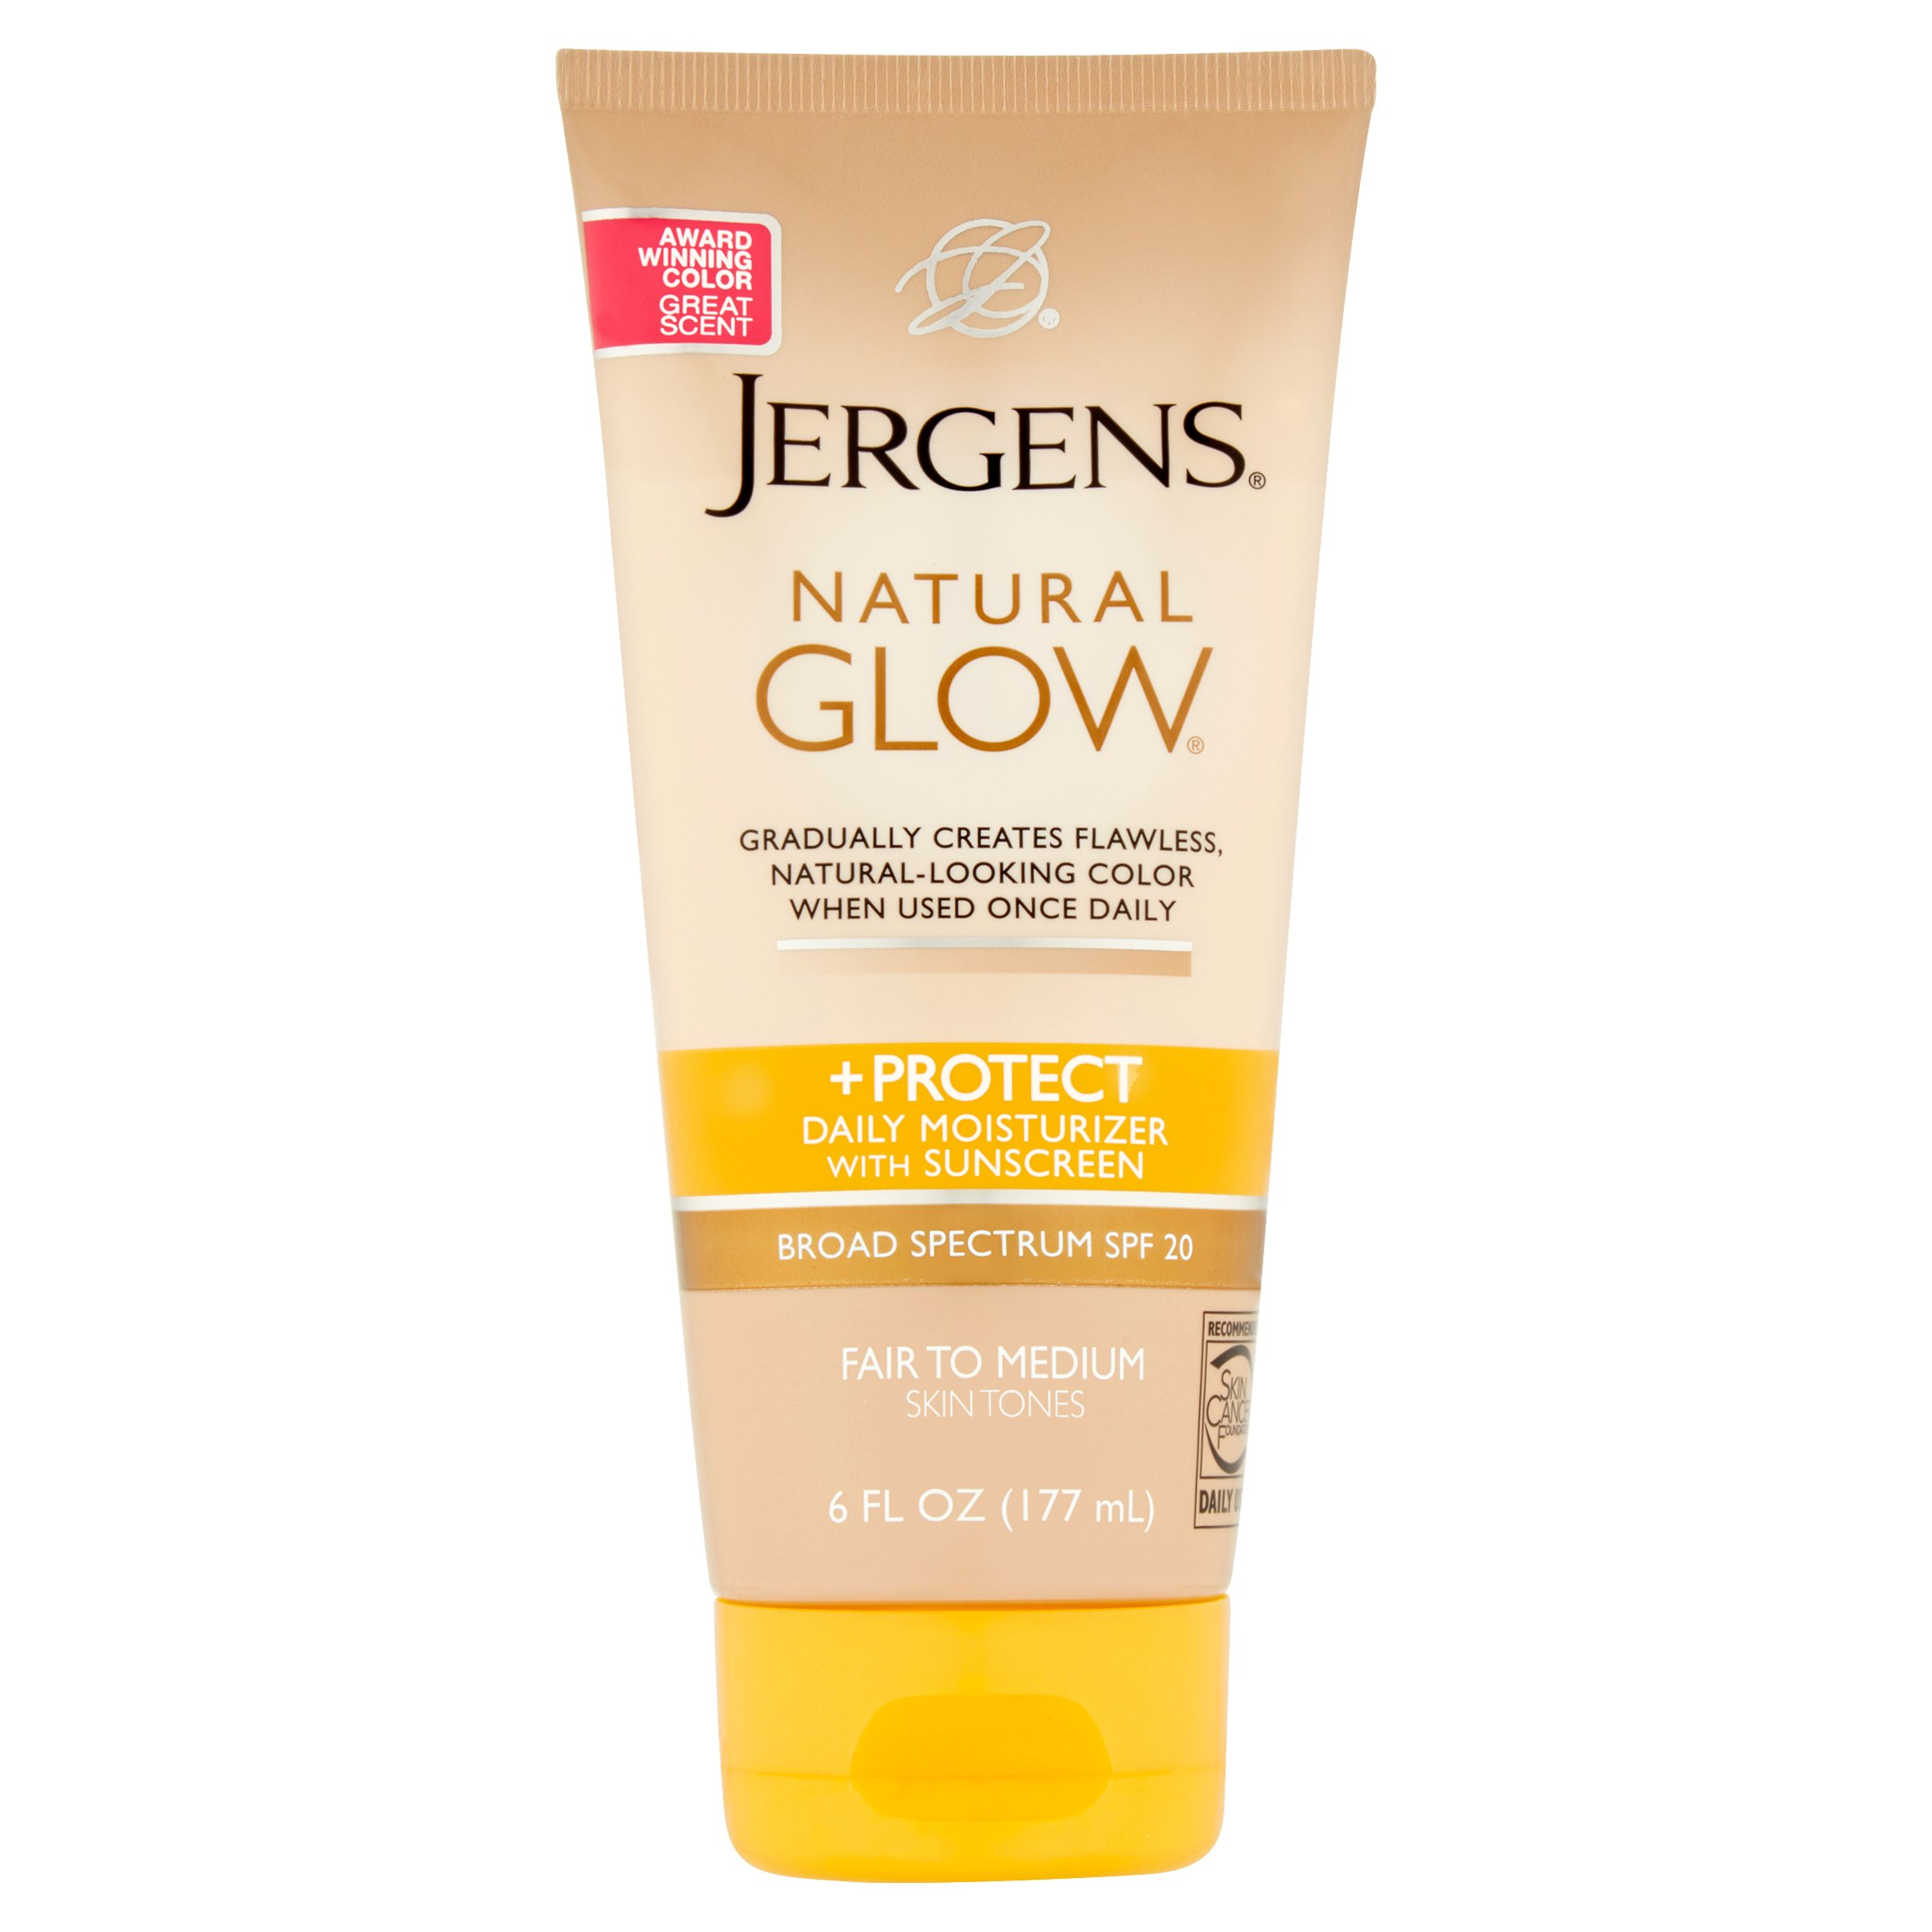 Jergens Natural Glow + Protect Daily Moisturizer with Sunscreen Broad Spectrum, SPF 20, 6 fl oz